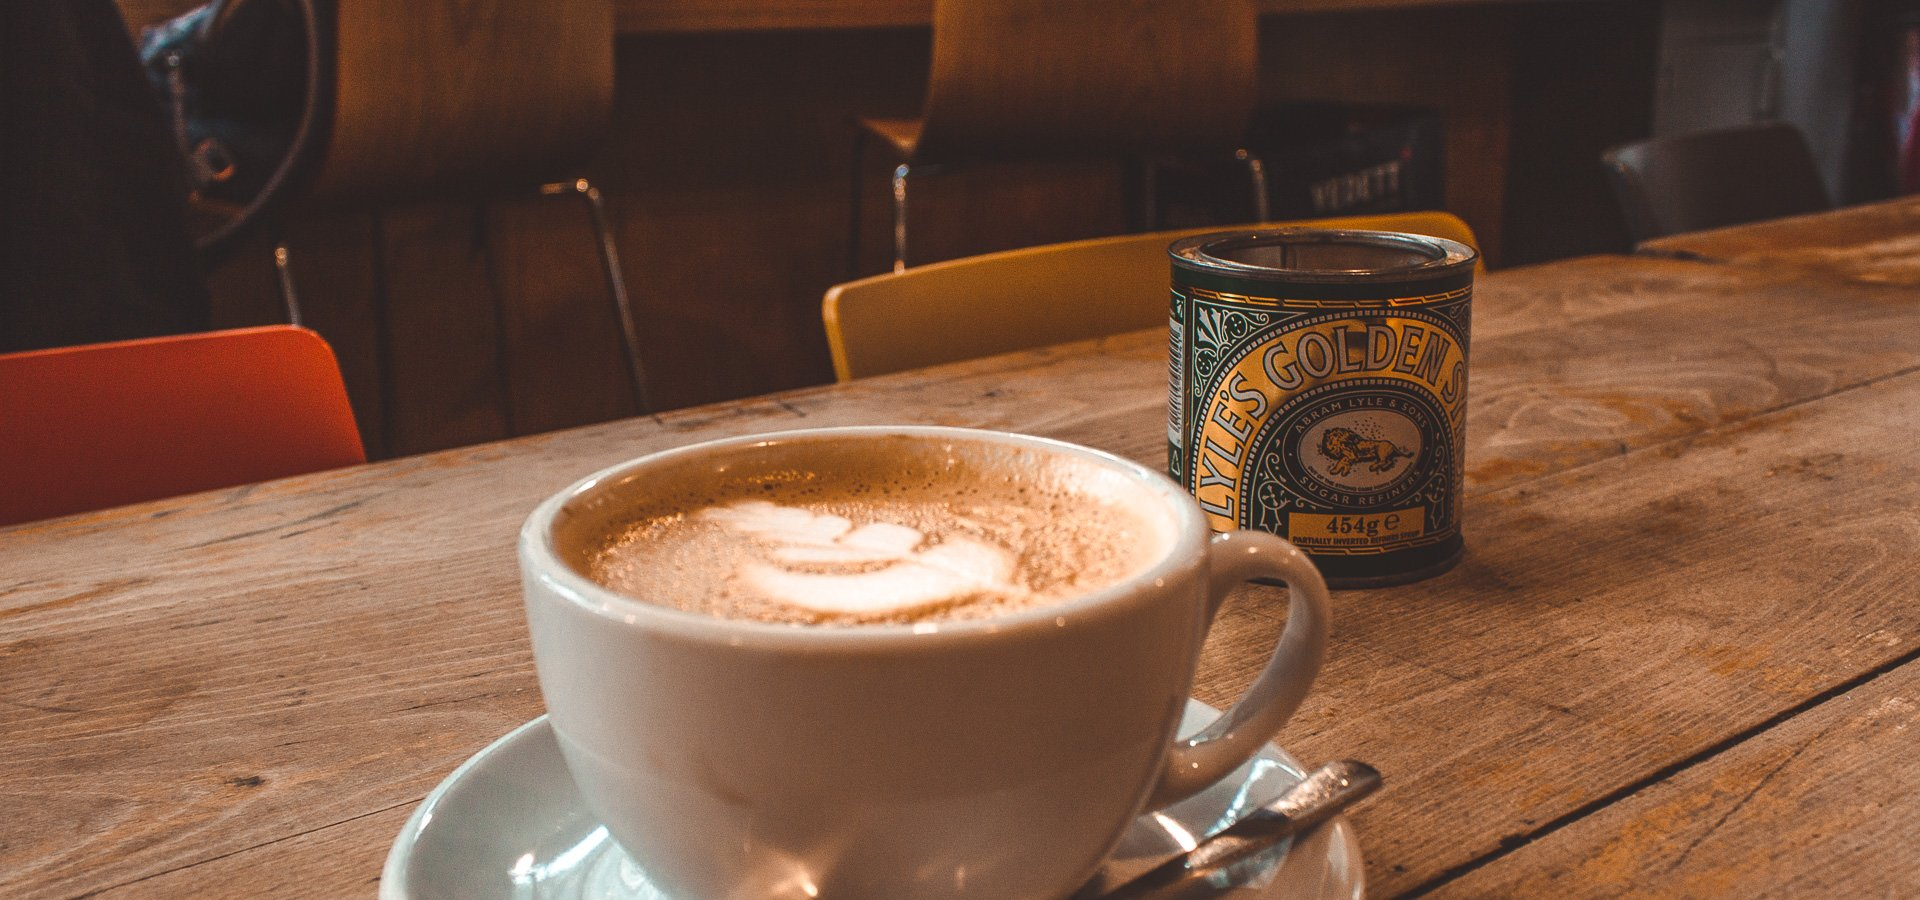 The Top 10 Cafes For Specialty Coffee In London | specialty coffee in london 8